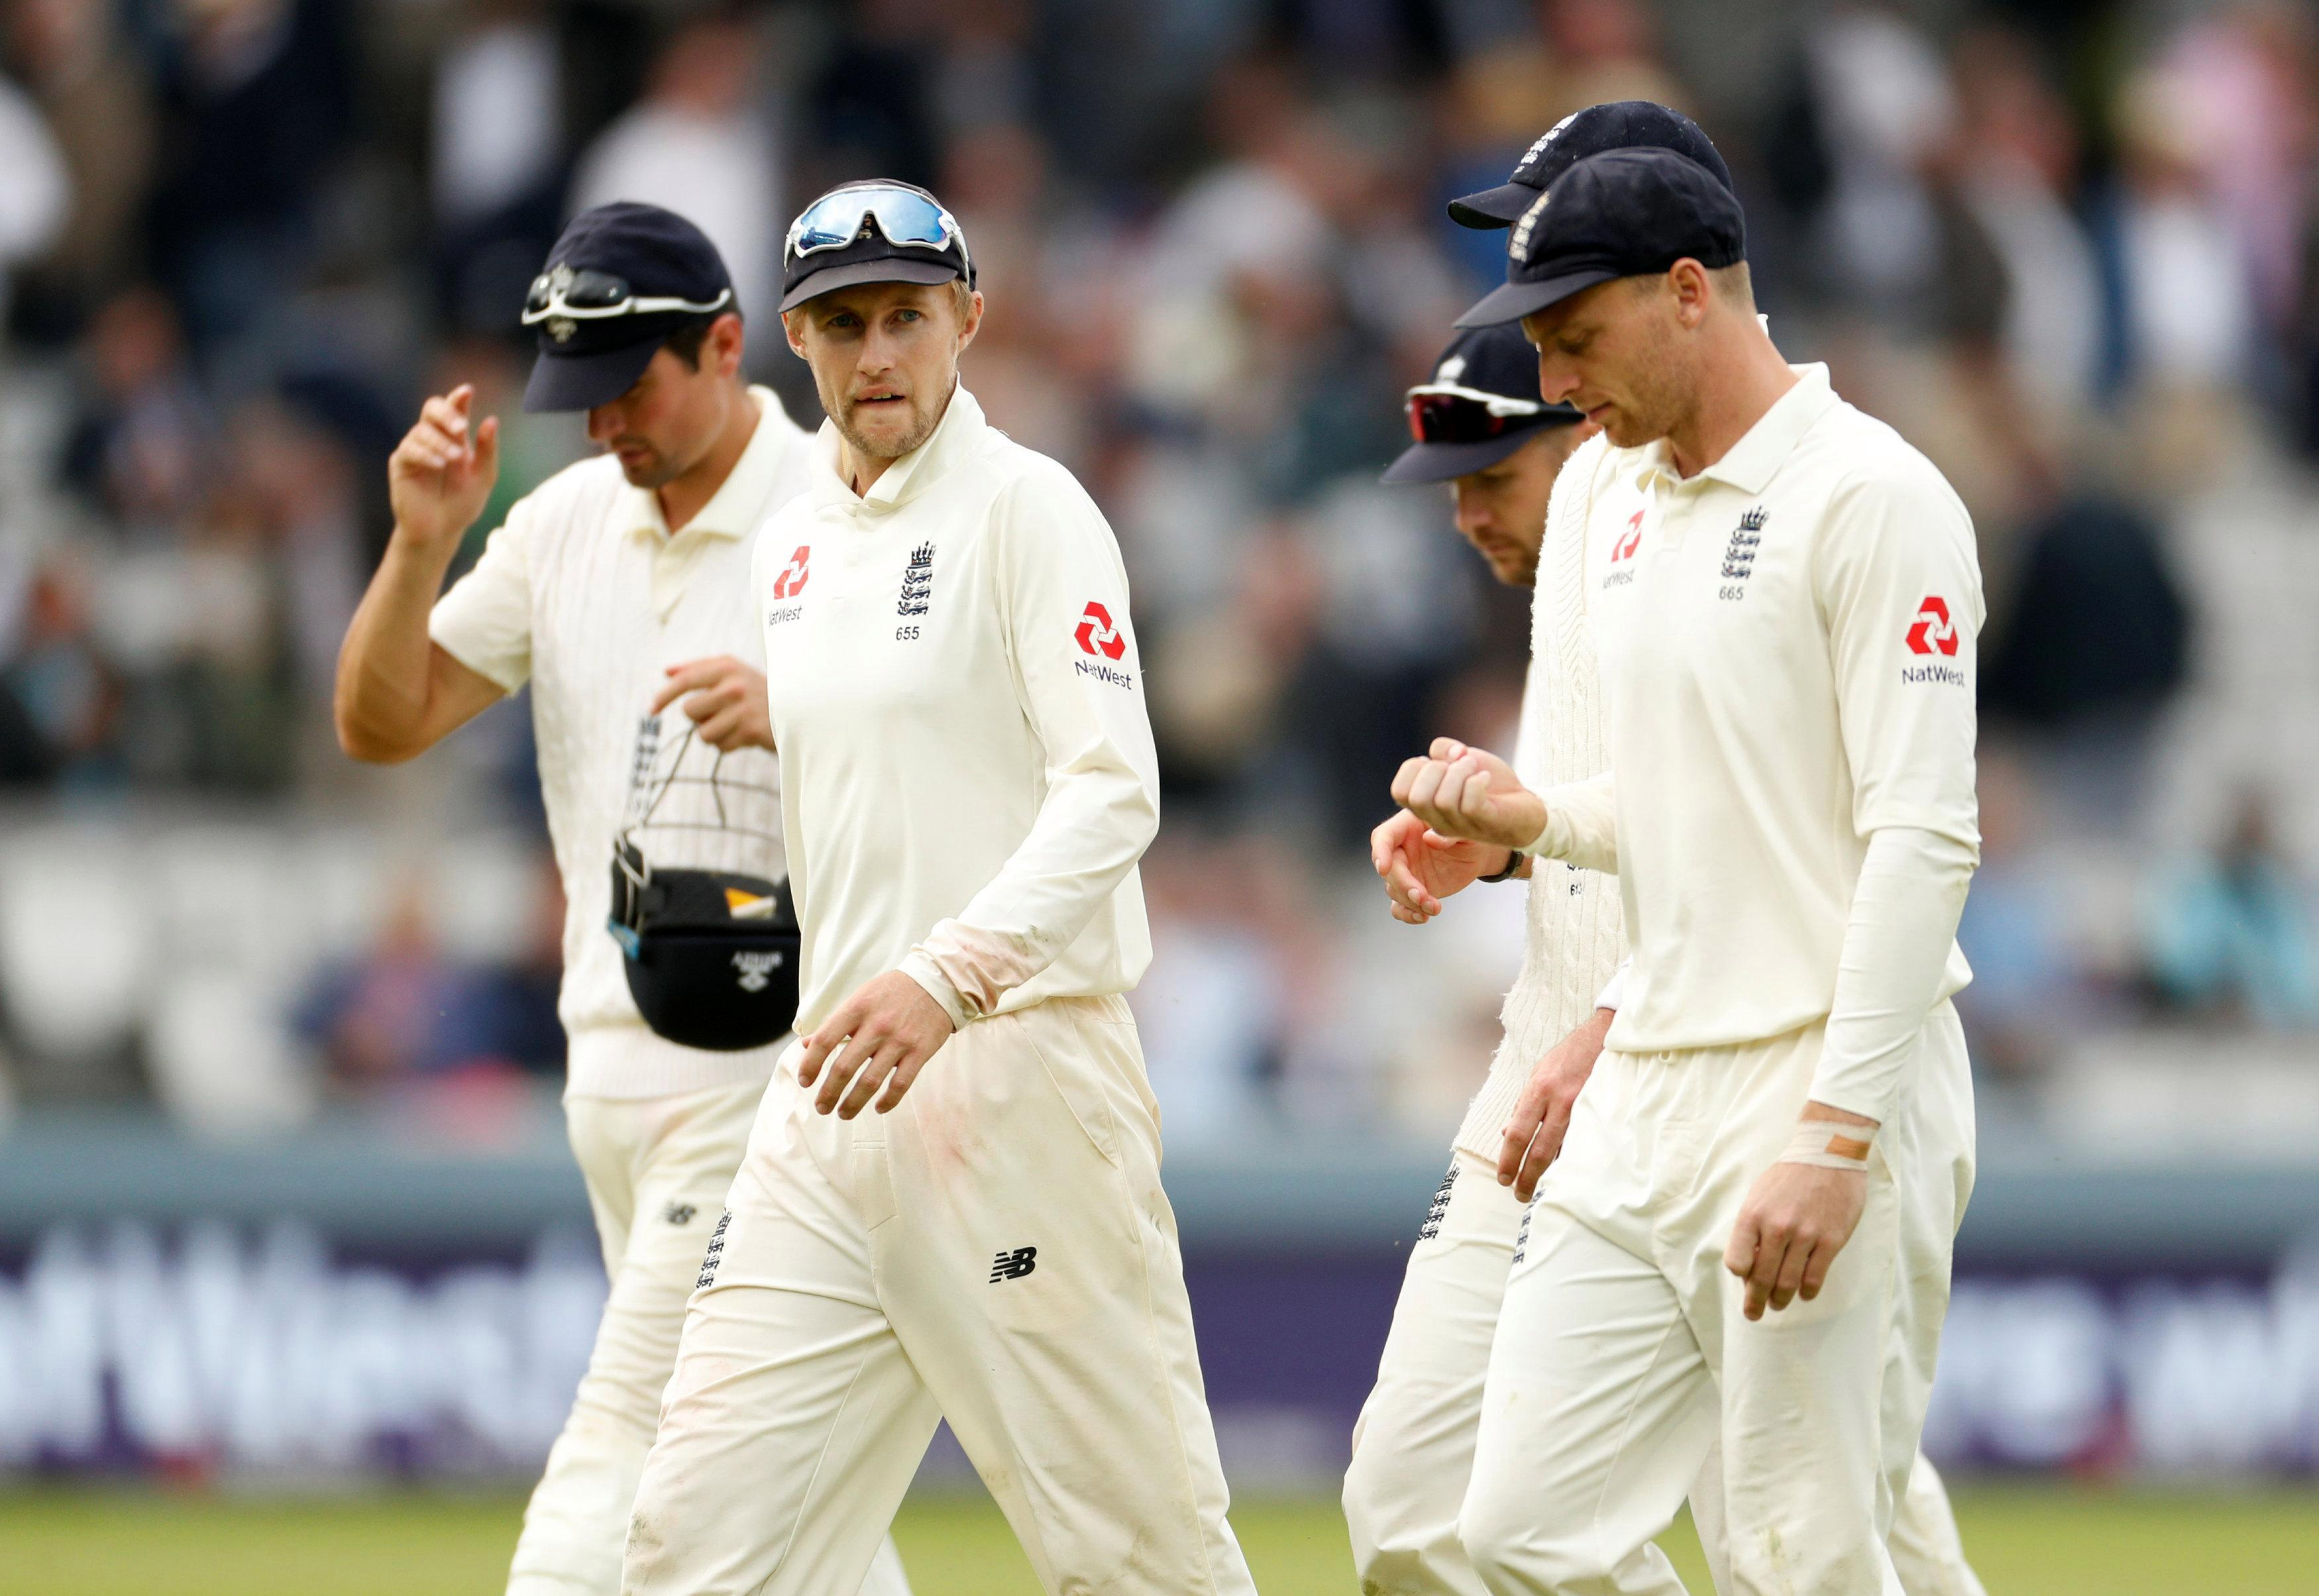 Investigation Reveals The Plan To Fix Eng-Srilanka Test